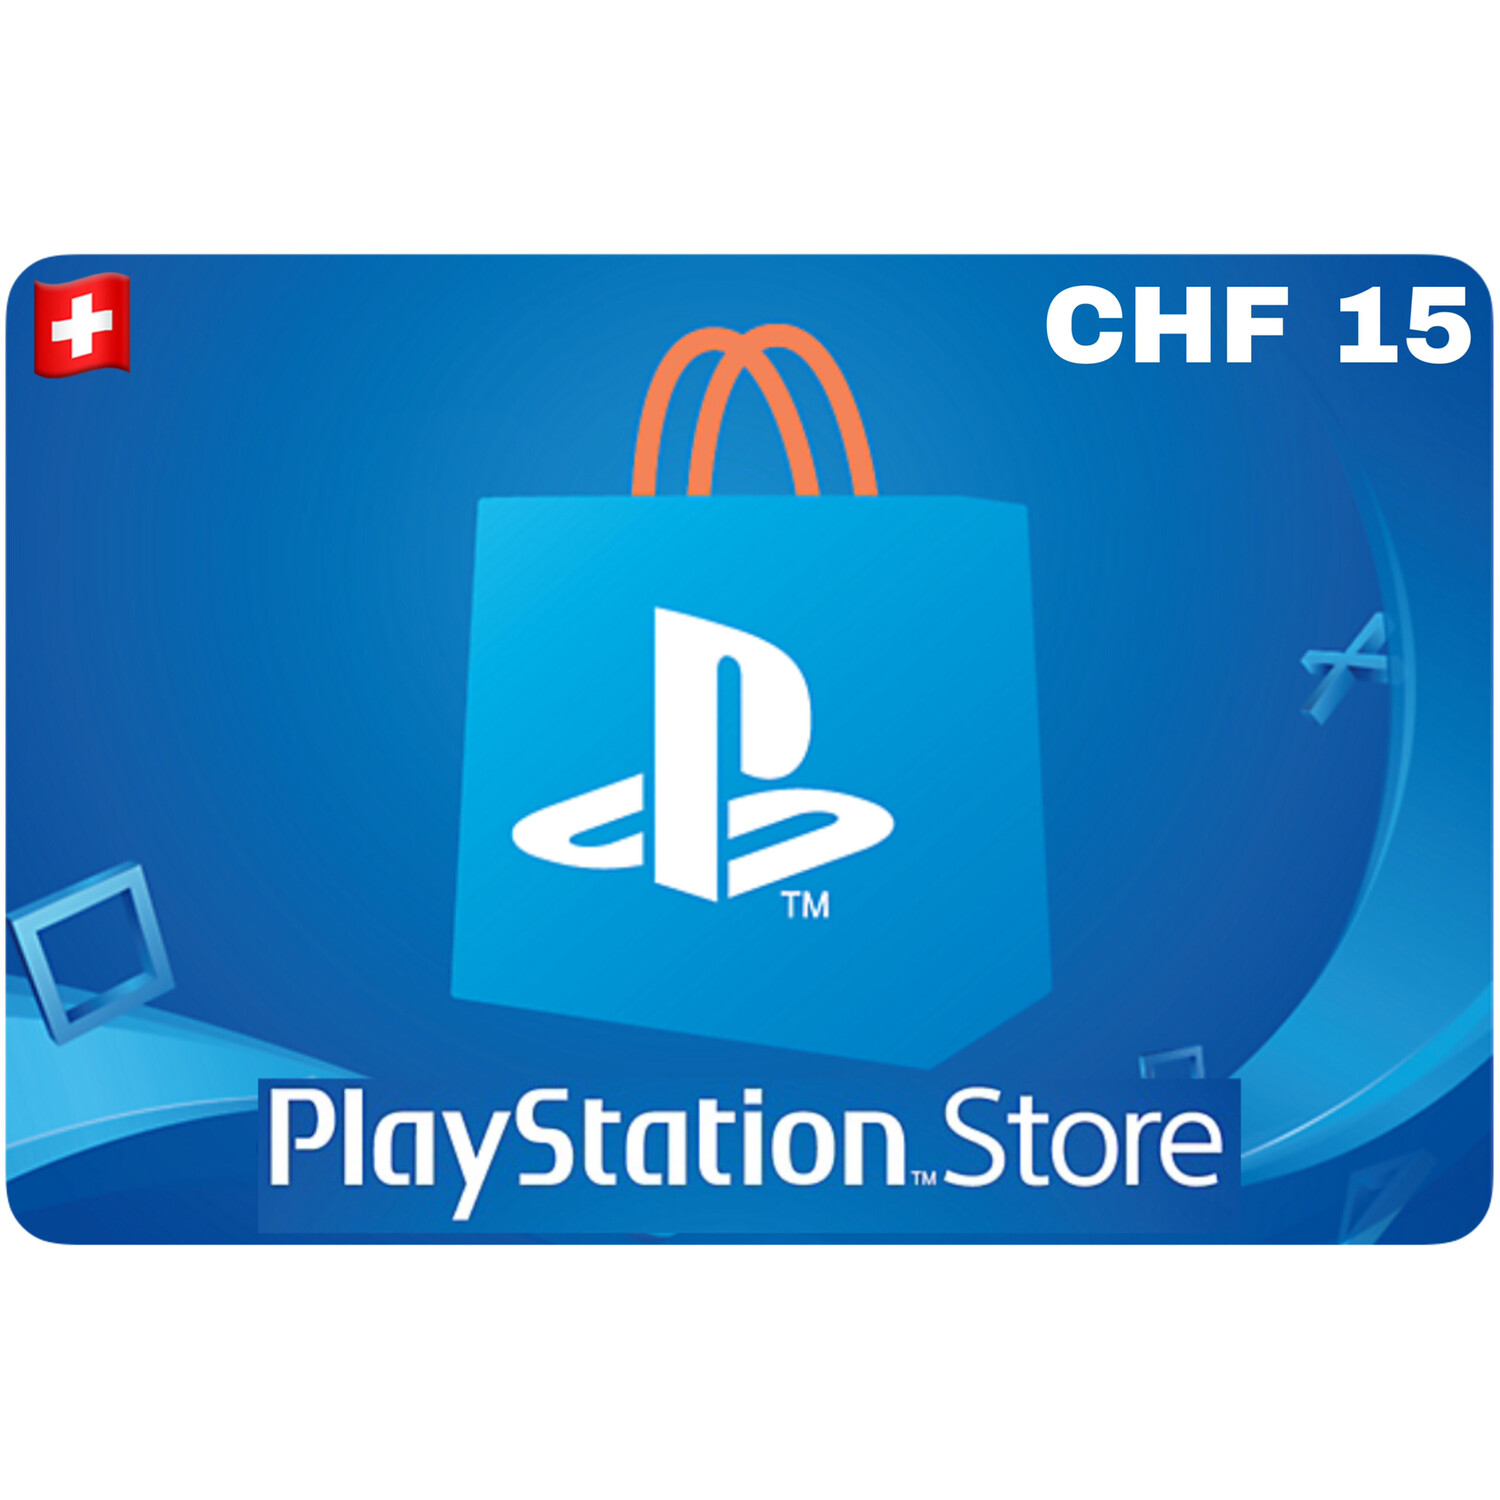 Playstation Store Gift Card Switzerland CHF 15